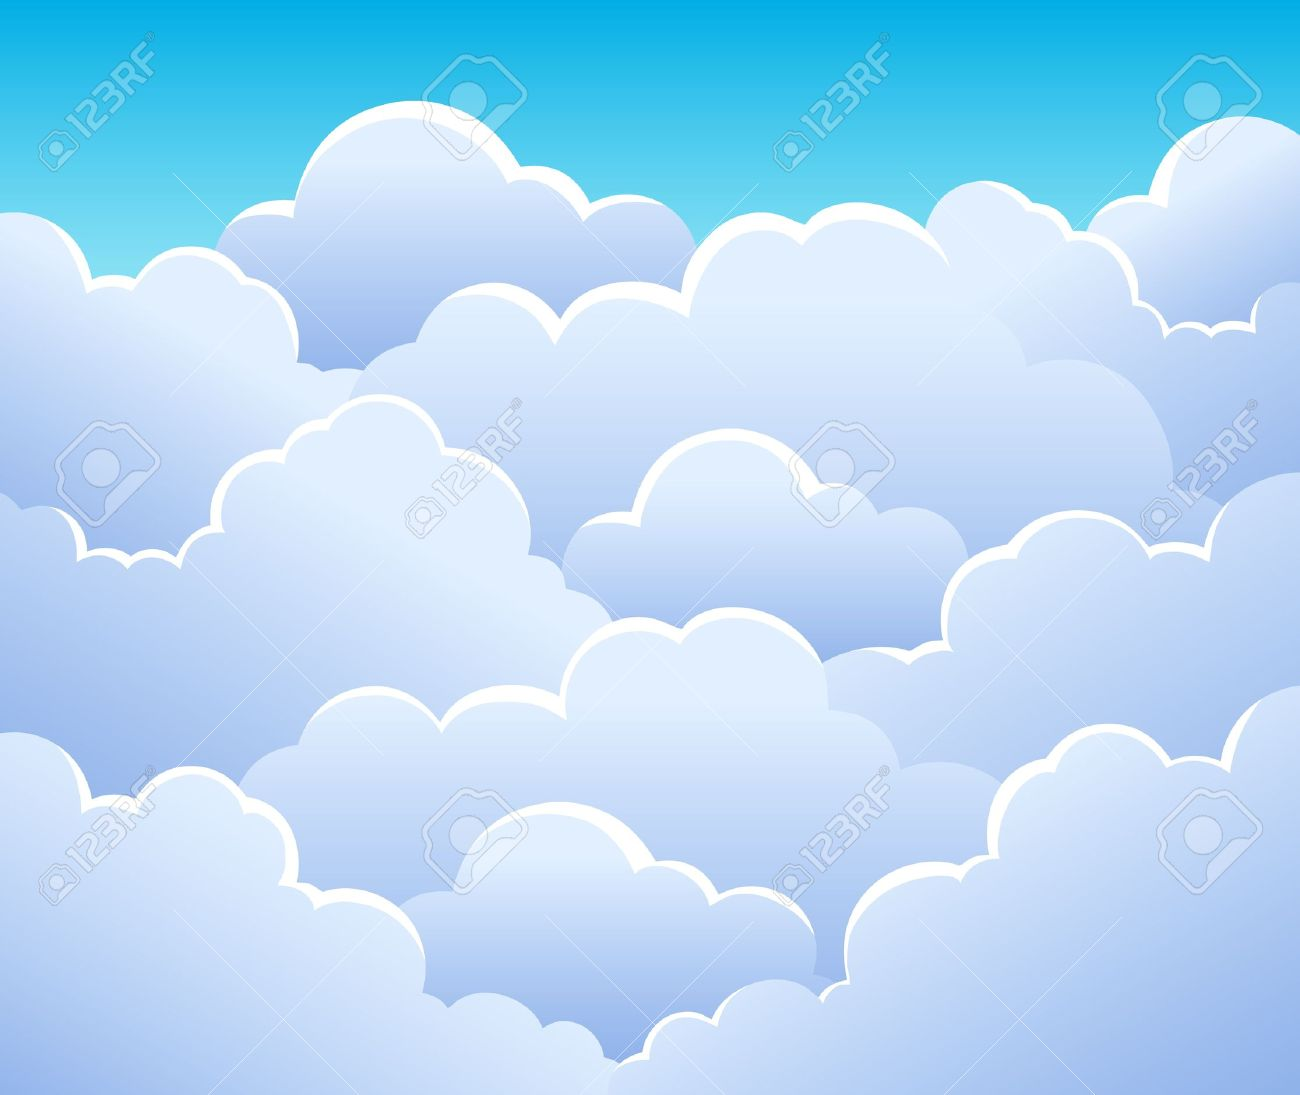 Cloudy sky background 3 - vector illustration Stock Vector - 13356173